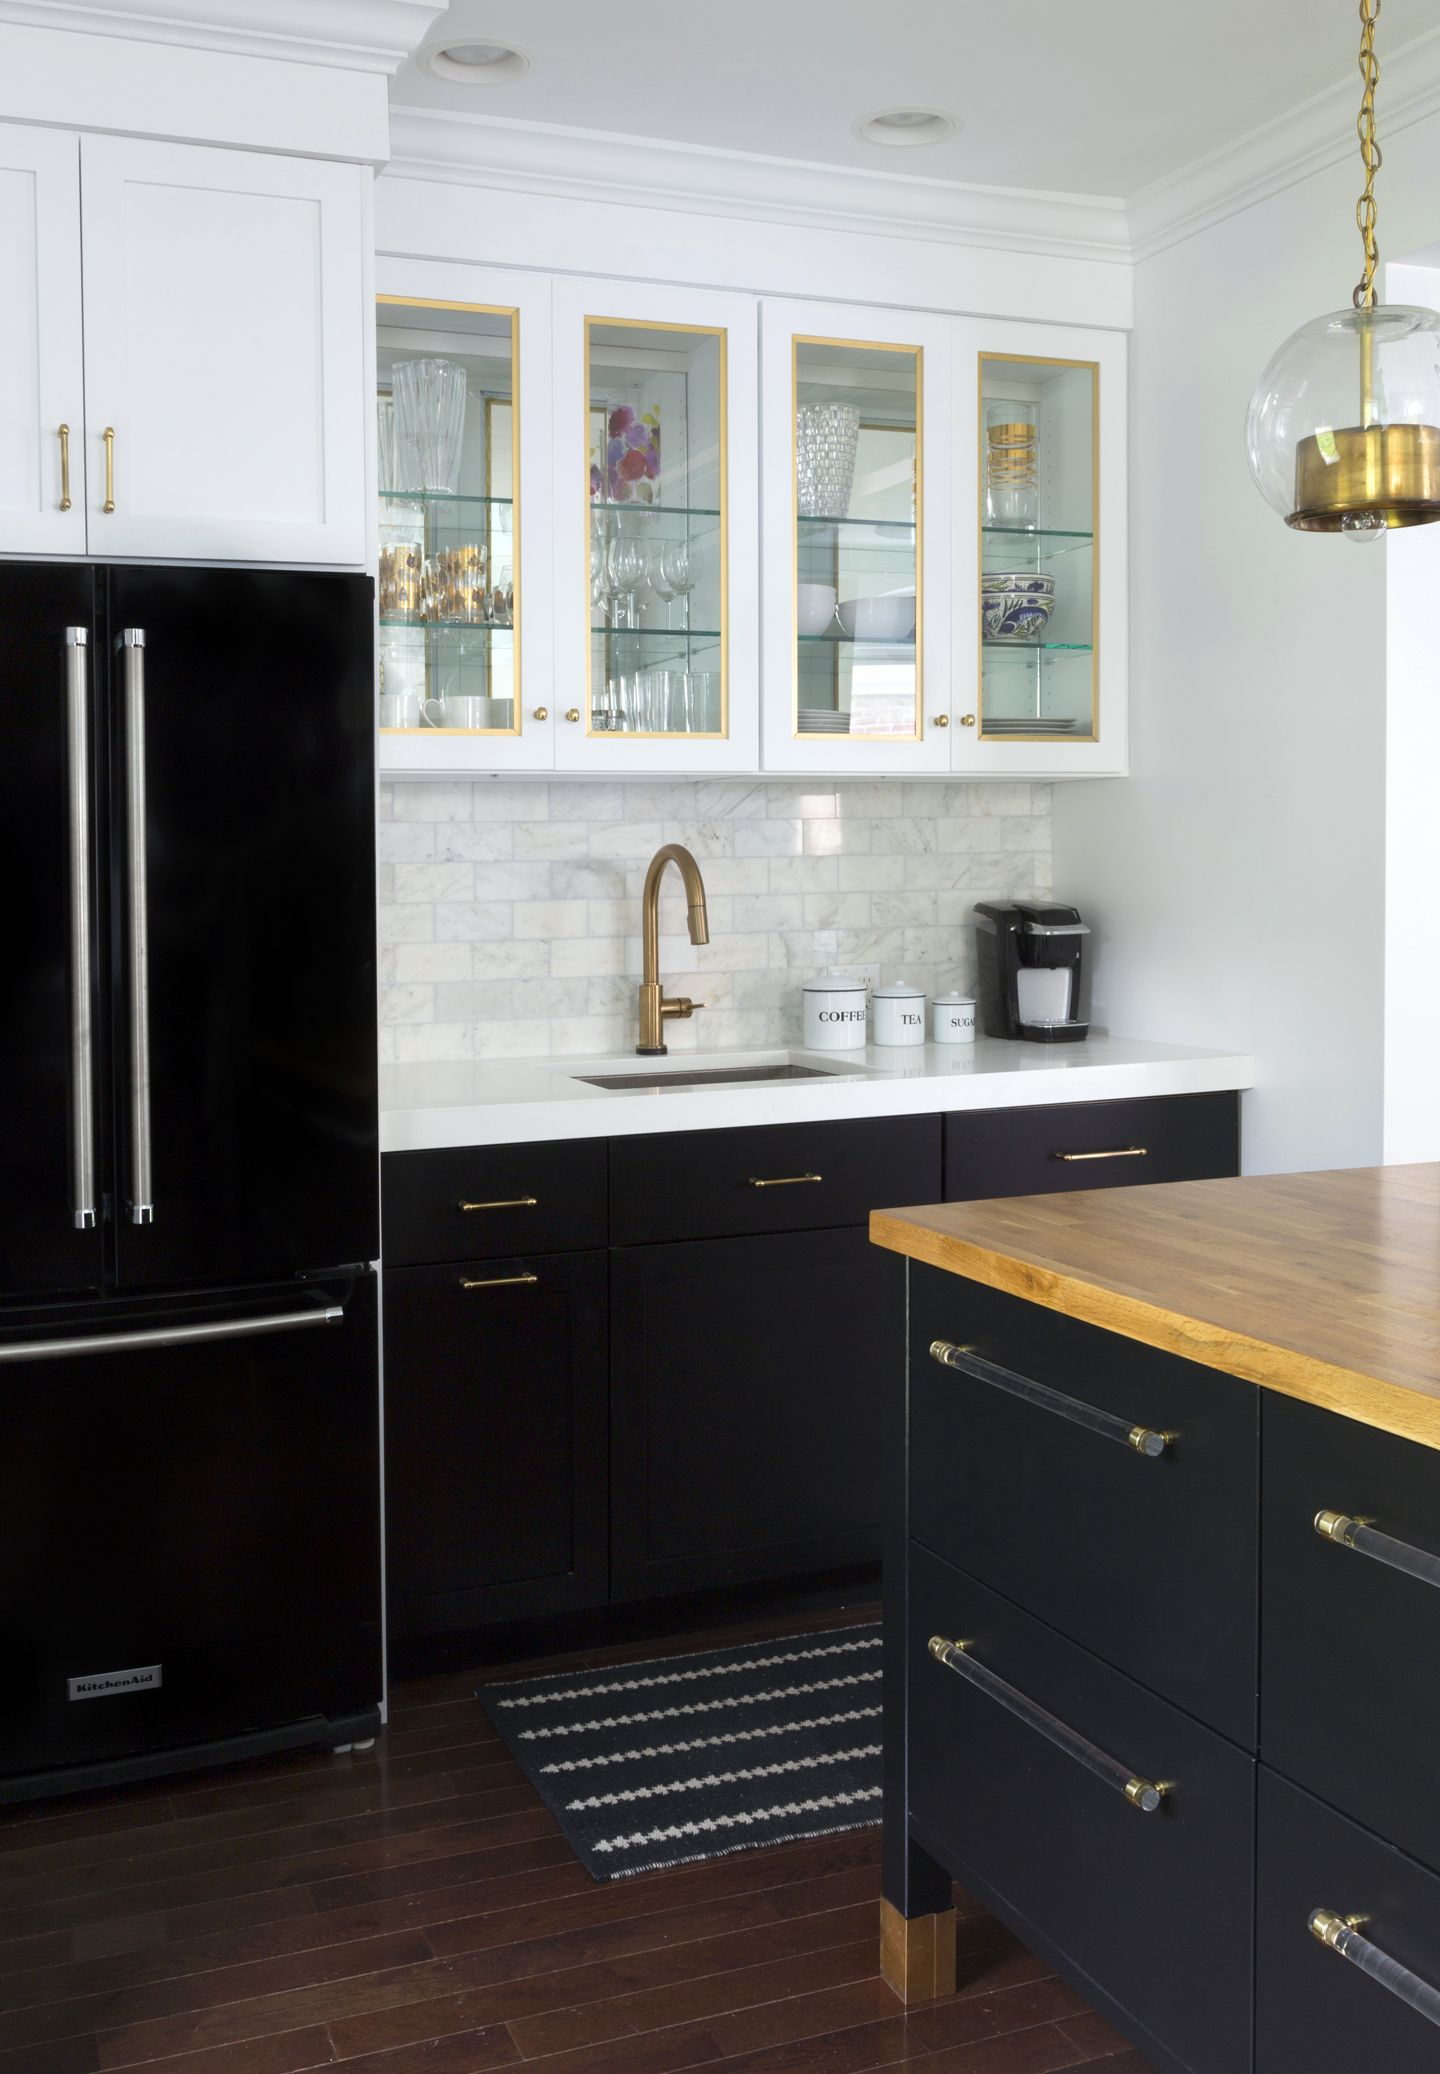 Black Refrigerator With Black Base Cabinets And White